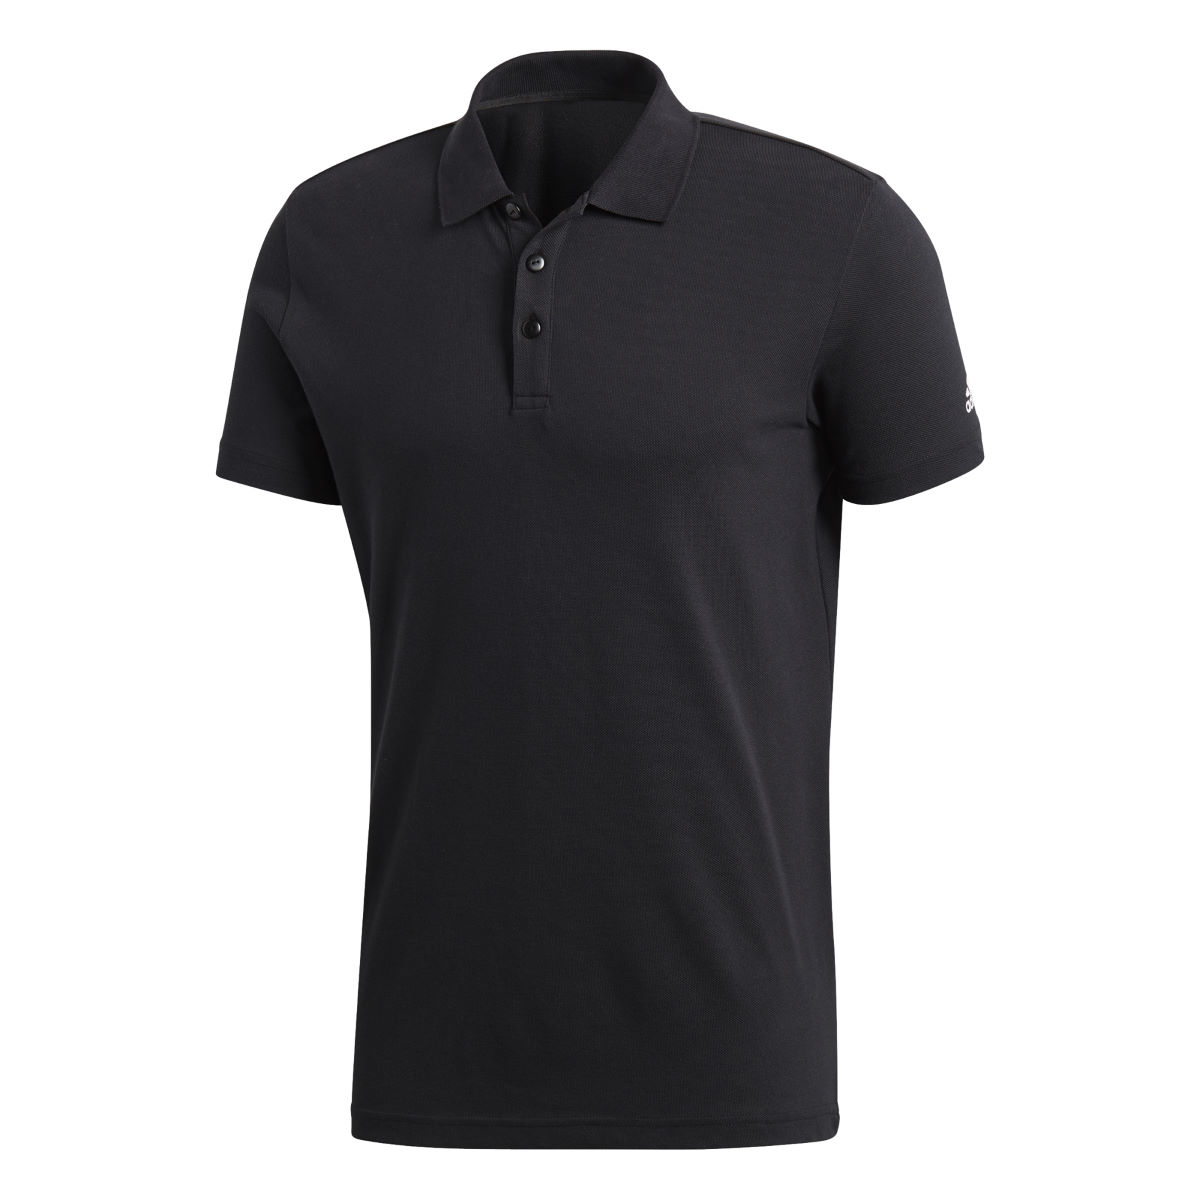 Adidas Essentials Classic Polo Shirt - Camisetas